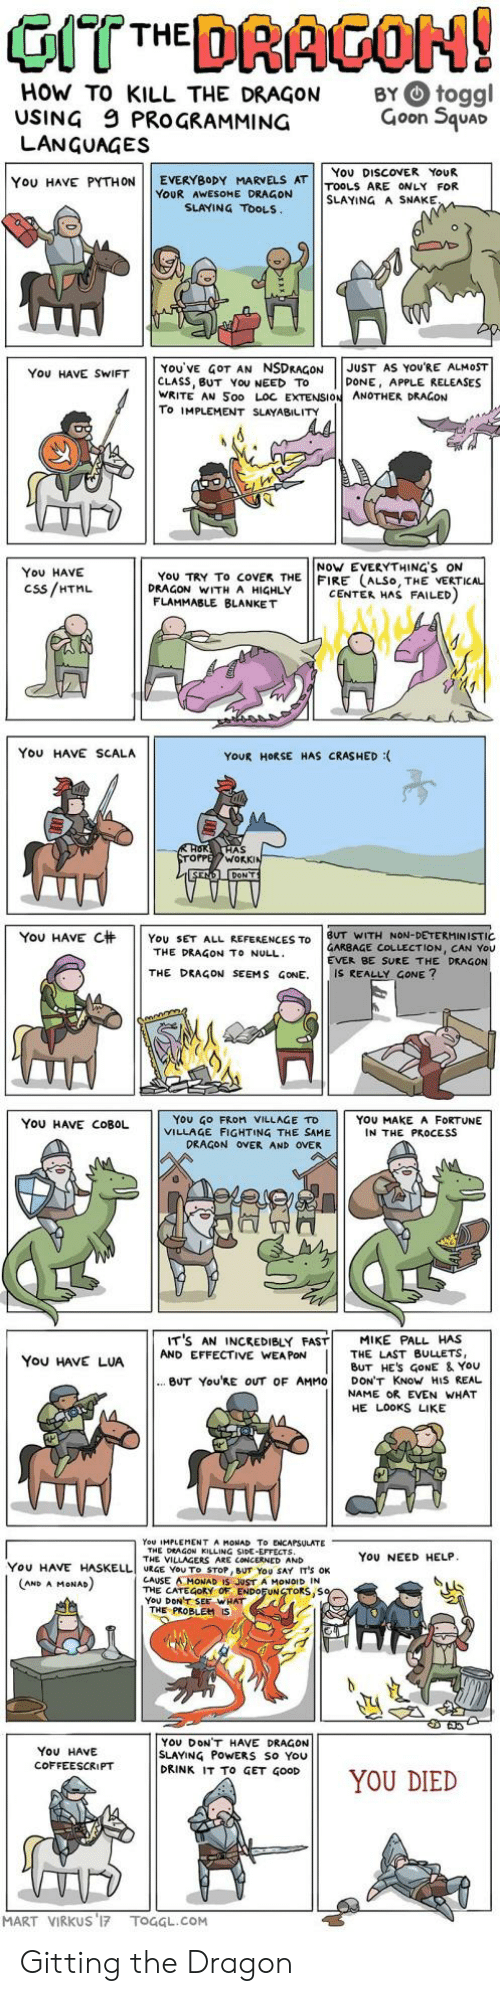 how to kill: HOW TO KILL THE DRAGON  USING 9 PROGRAMMING  LANGUAGES  BY O toggl  Goon Squar  You DISCOVER YoUR  YOU HAVE PYTHON | | EVERYBODY MARVELS AT | |TOOLS ARE ONLY FOR  YOUR AWESOME DRAGON  SLAYING A SNAKE  SLAYING TOOLS  YOU'VE GOT AN NSDRAGONJUST AS YOURE ALMOST  CLASS, BUT YoU NEED TO  WRITE AN Soo LOC EXTENSION ANOTHER DRAGON  To IMPLEMENT SLAYABILITY  You HAVE SWIFT  DONE, APPLE RELEASES  NoW EVERYTHING'S ON  You HAVE  Css/HTML  YoU TRY To coVEK THE FIRE (ALSo, THE VERTI  DRAGON WITH A HIGHLY  CENTER HAS FAILED  FLAMMABLE BLANKET  You HAVE SCALA  YOUR HORSE HAS CRASHED :  AS  WORK  YOU HAVE C杄 | | YOU SET ALL REFERENCES TO | BUT WITH NON-DETERMINISTIC  GARBAGE COLLECTION, CAN You  EVER BE SURE THE DRAGON  THE DRAGON TO NULL  THE DRAGON SEEMS GONE. IS REALLY GONE?  YoU GO FRoM VILLAGE TD  VILLAGE FIGHTING THE SAME  YOU HAVE COBOL  YOU MAKE A FORTUNE  IN THE PROCESS  DRAGON OVER AND OVER  IT'S AN INCREDIBLY FAST! MIKE PALL HAS  You HAVE LUAAND EFFECTIVE WANE ES  THE LAST BULLETS,  BUT HES GoNE & YoU  BUT You'RE OUT OF AMMO DON'T KNoW HIS REAL  NAME OR EVEN WHAT  HE LOOKS LIKE  You IMPLEMENT A MONAD To ENCAPSULATE  THE DEAGON KILLING SIDE-EFFECTS  THE VILLAGERS ARE CONCERNED AND  YoU NEED HELP  YOU HAVE HASELLI URGE YOU To STOP, BUT YOU SAY IT'S OK  CAUSE AMONAD IS JUST A MONOID IN  THE CATEGORY OF ENDOFUNSTORS,S  YoU DONT SEE WHAT  AND A MoNAD  THE PROBLEM  YOU DONT HAVE DRAGON  SLAYING PoWERS So You  DRINK IT To GET GOOD  ON11 YOU DIED  You HAVE  COFFEESCRIPT  MART VIRKUS 17 TOGGL.COM Gitting the Dragon